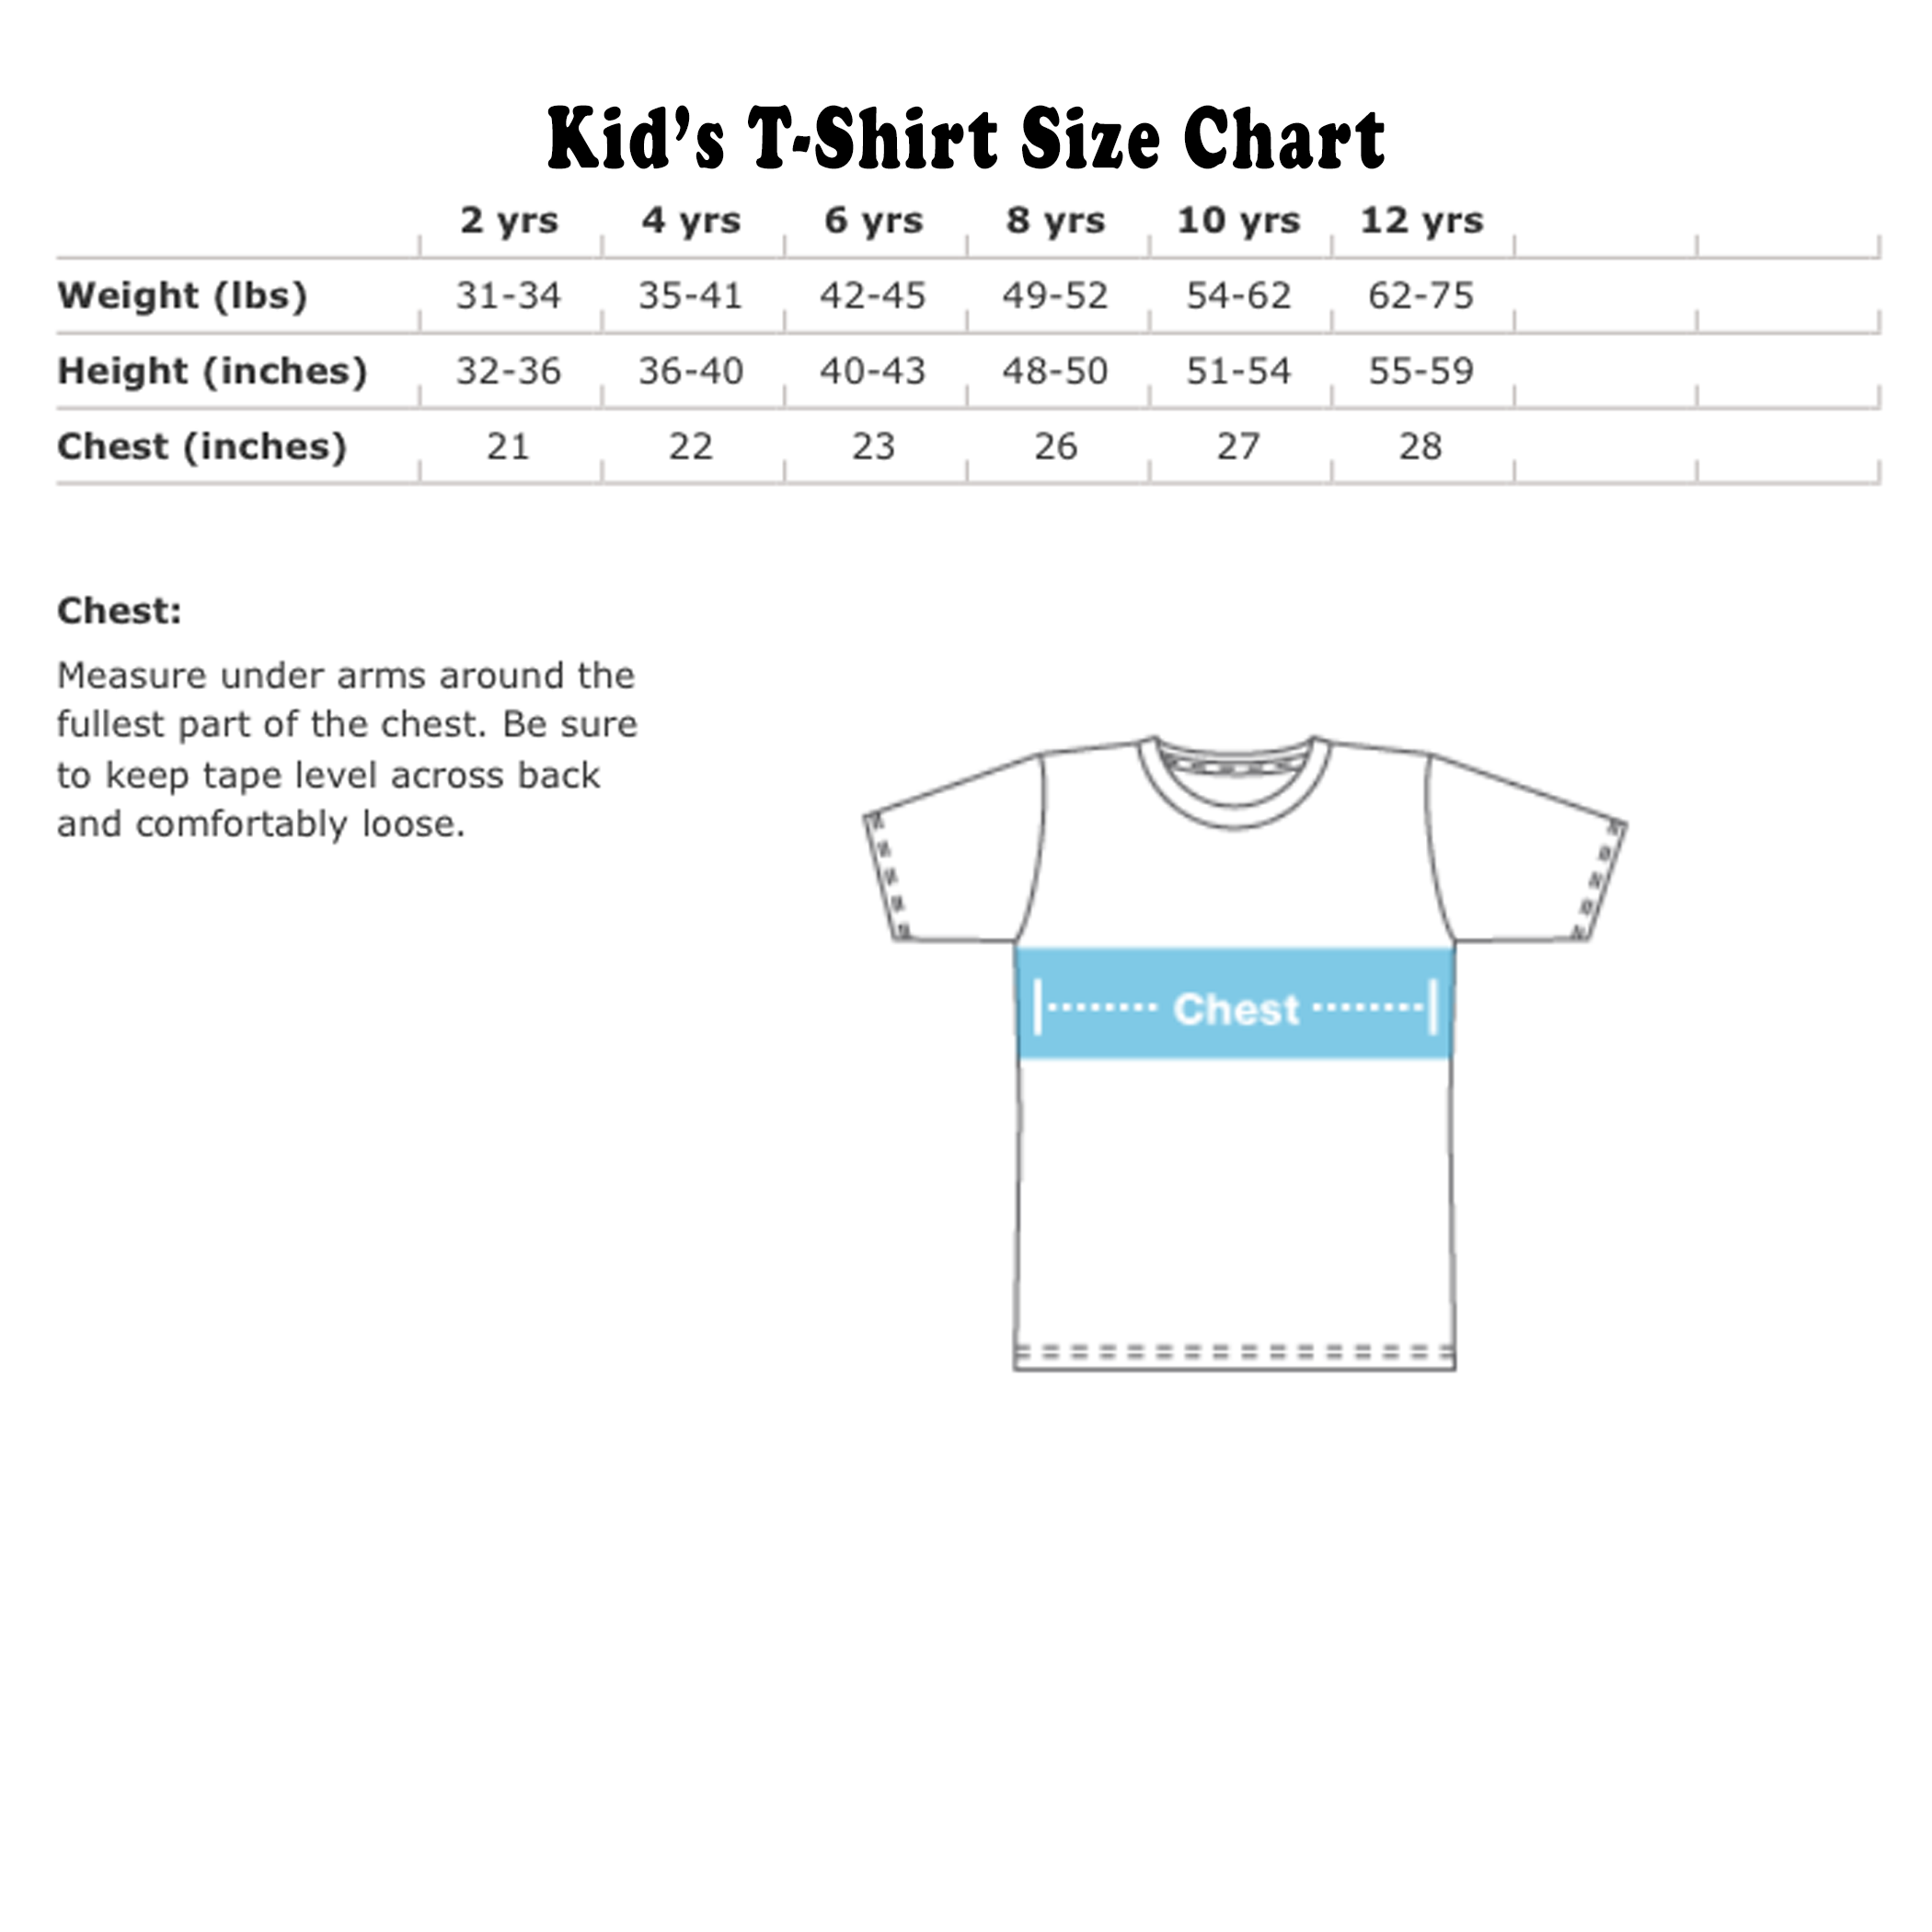 T-Shirt Size Charts. We offer the latest designs in tons of popular sizes from toddlers and kids to juniors and adults. If you have questions about our size-charts, feel free to Contact Us.